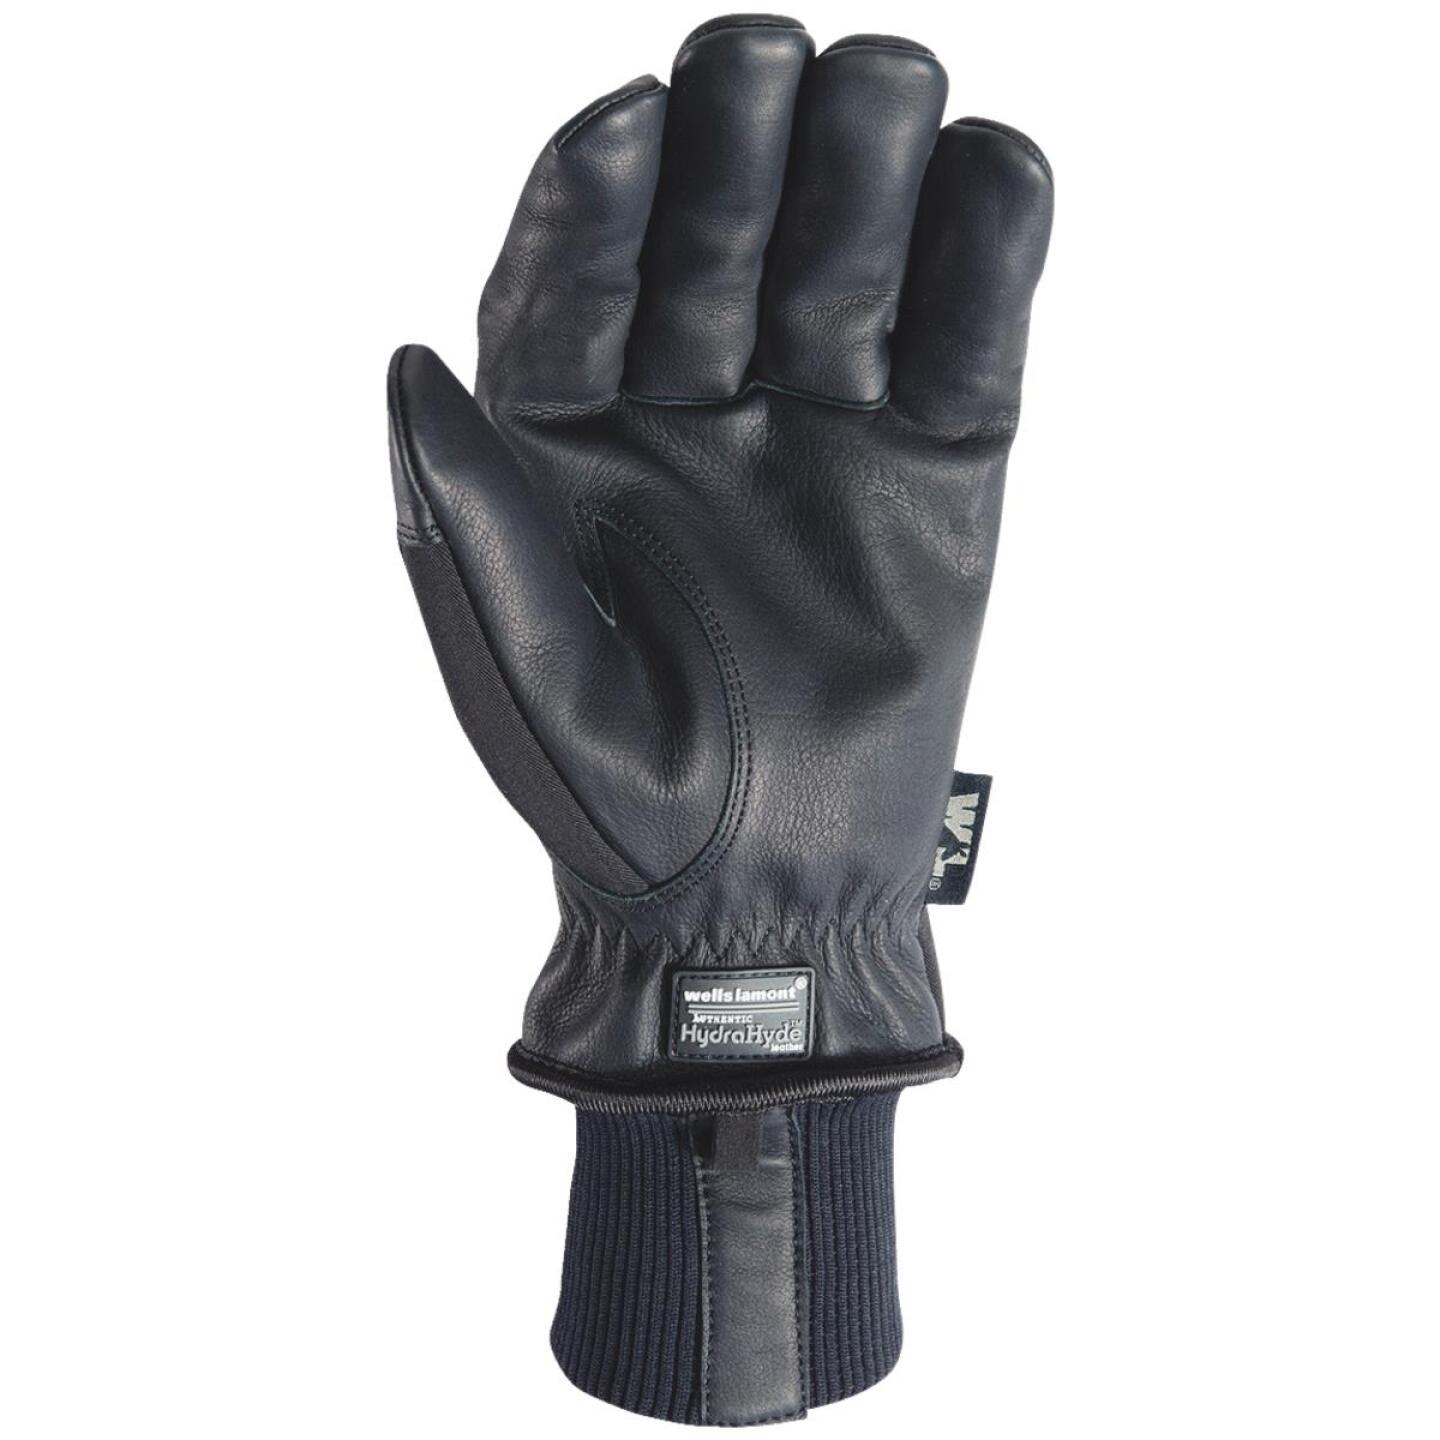 Wells Lamont HydraHyde Men's 2XL Grain Goatskin Black Insulated Work Glove Image 2